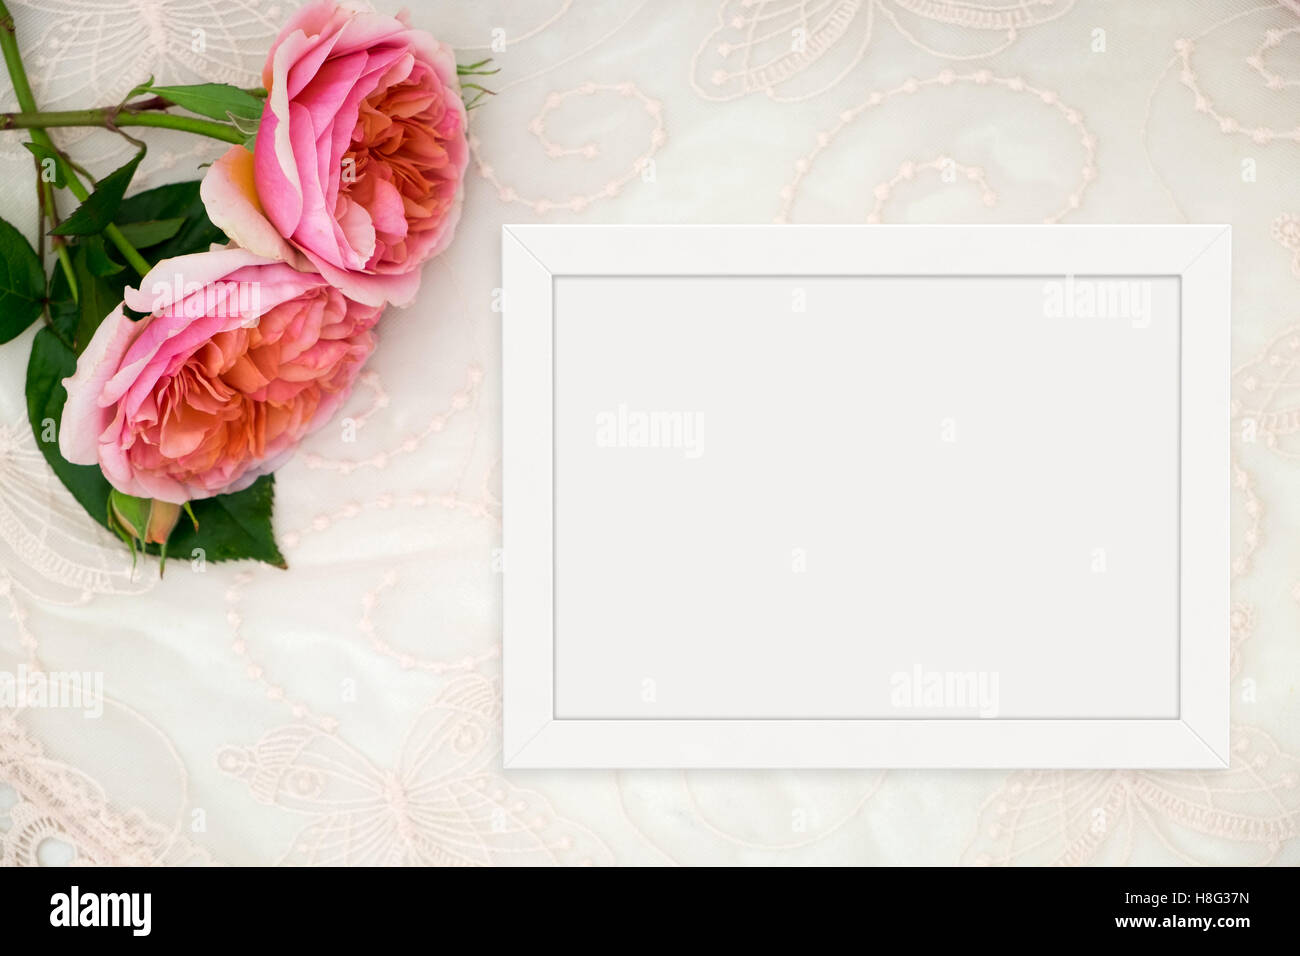 White flat lay landscape frame mockup on lace, roses beside the frame, overlay your quote, promotion, headline, Stock Photo